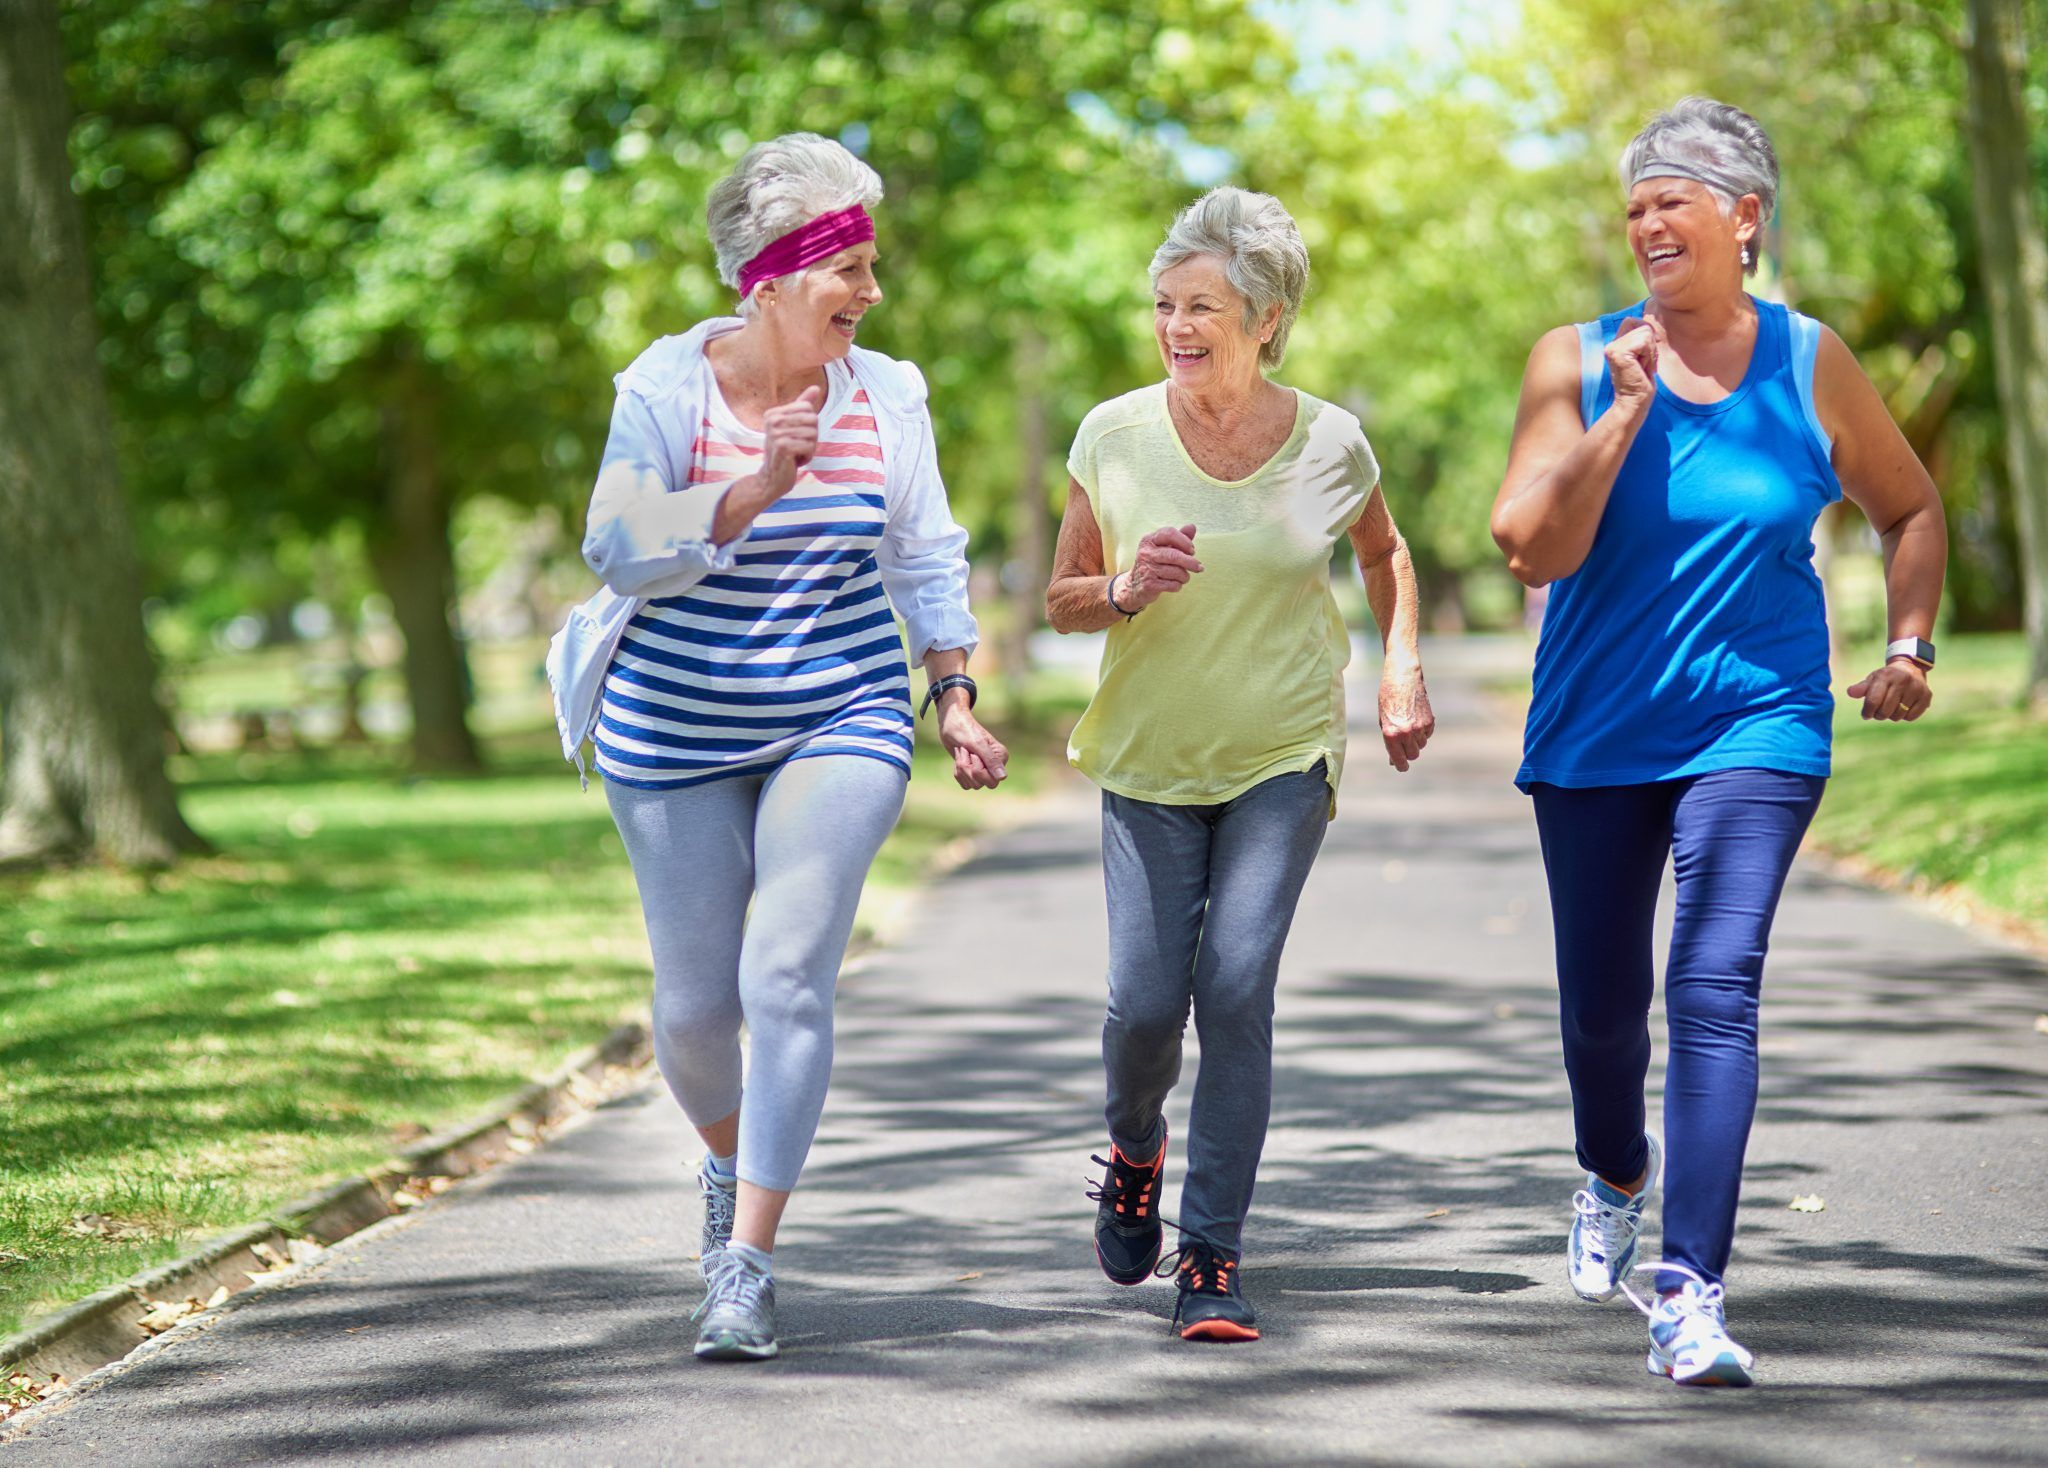 Shot of a group of elderly friends enjoying a run together outdoors